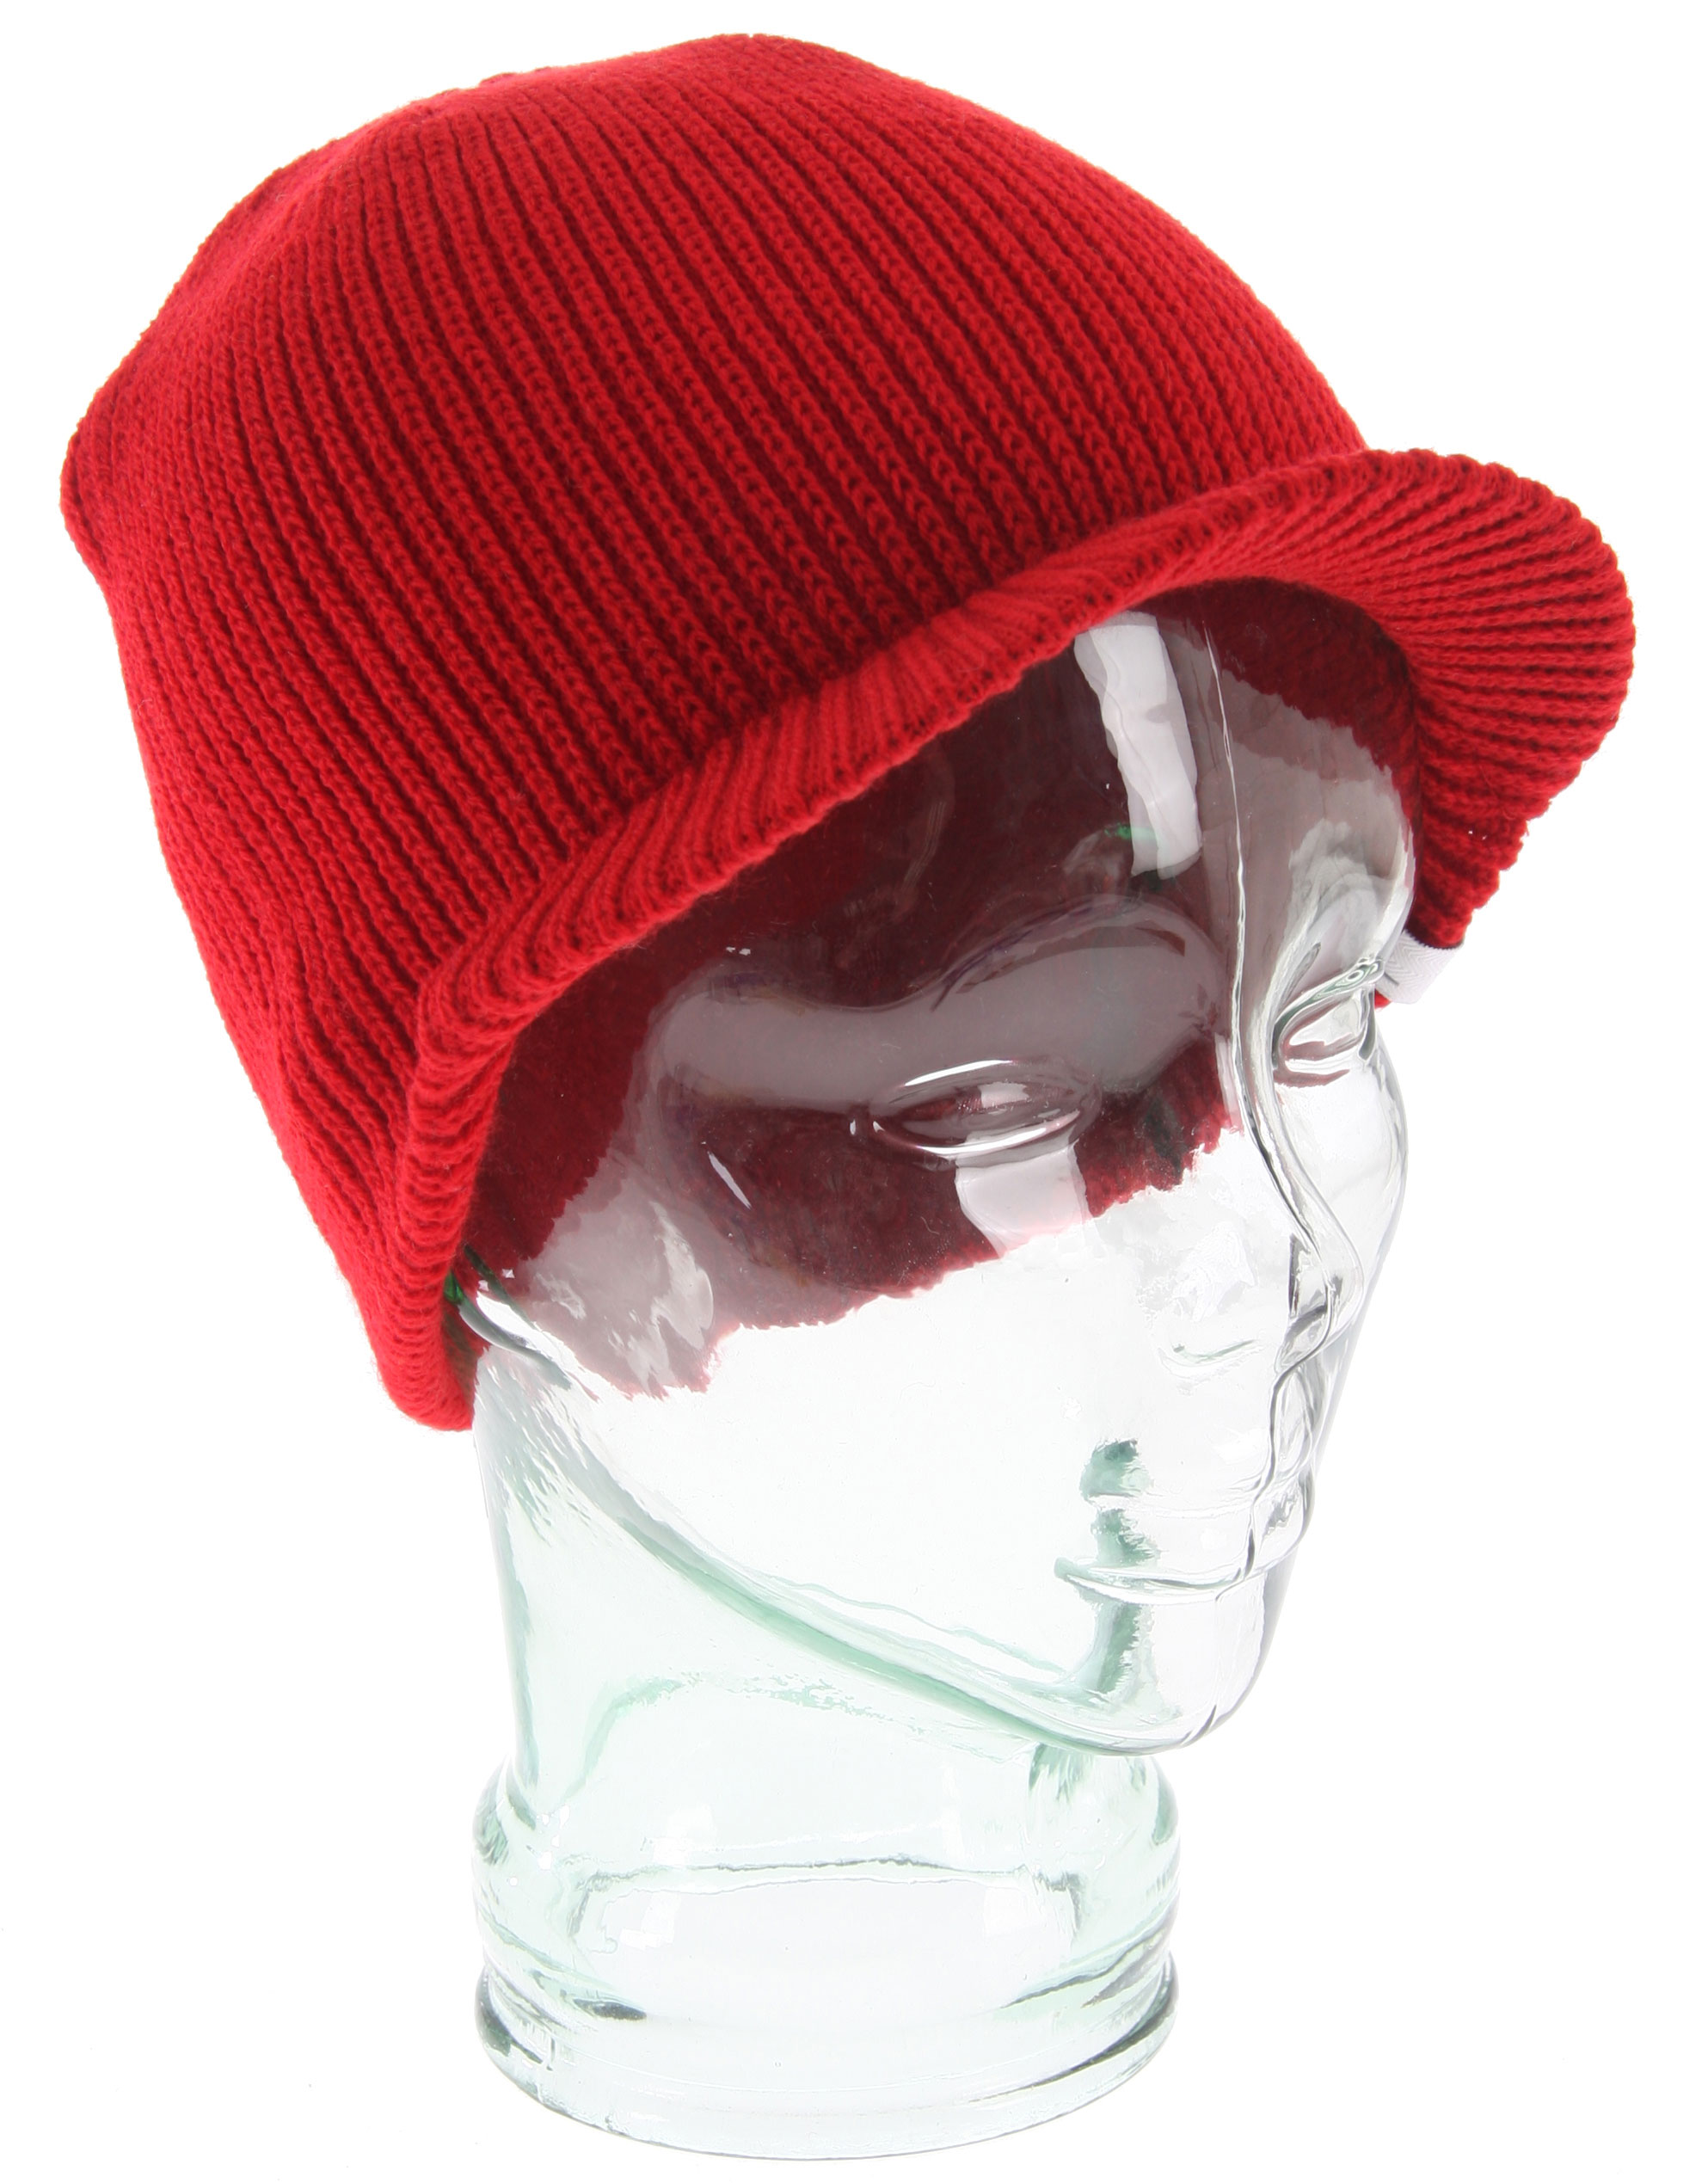 Fine rib knit texture and woven herringbone label make this the new standard in brim beanies. Acrylic. - $11.16